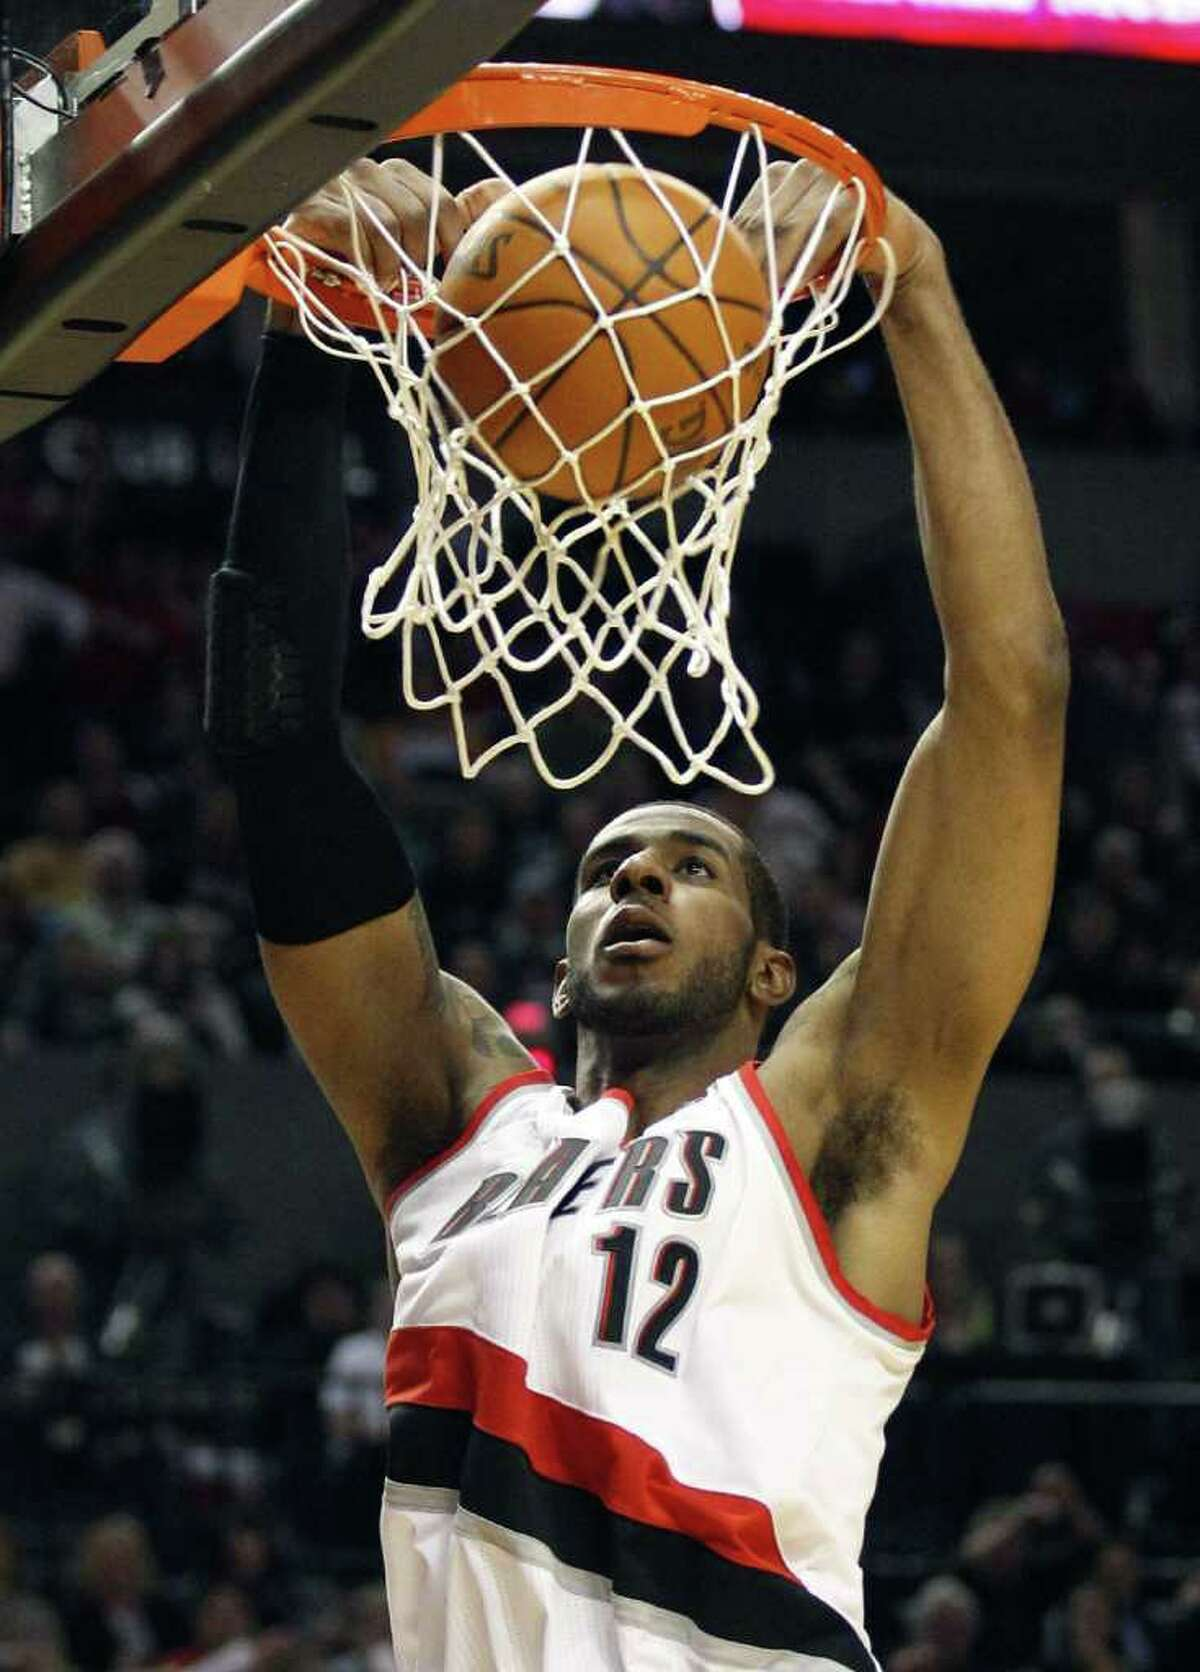 Trail Blazers forward LaMarcus Aldridge went pro after two seasons at UT, just months before Durant arrived in Austin, but he says he doesn't regret it.